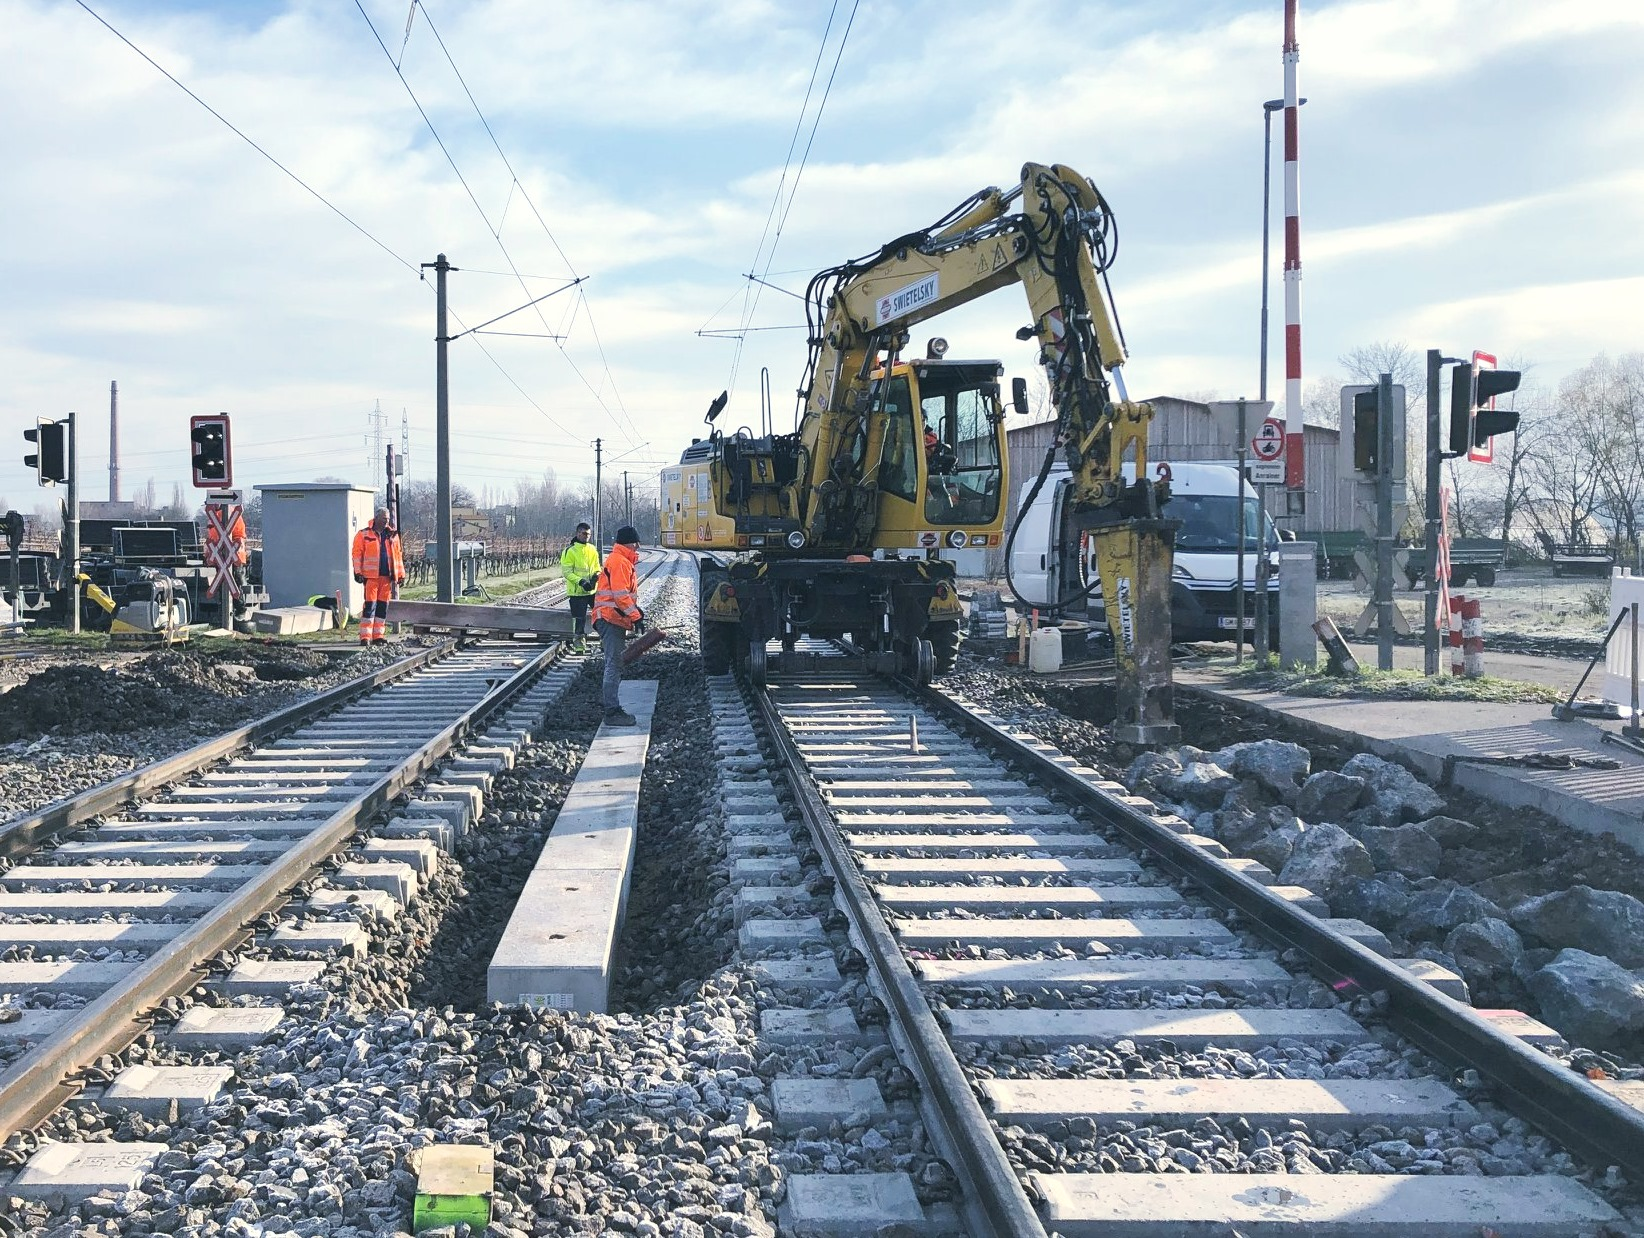 Erneuerung Oberbau - WLB Traiskirchen - Railway construction